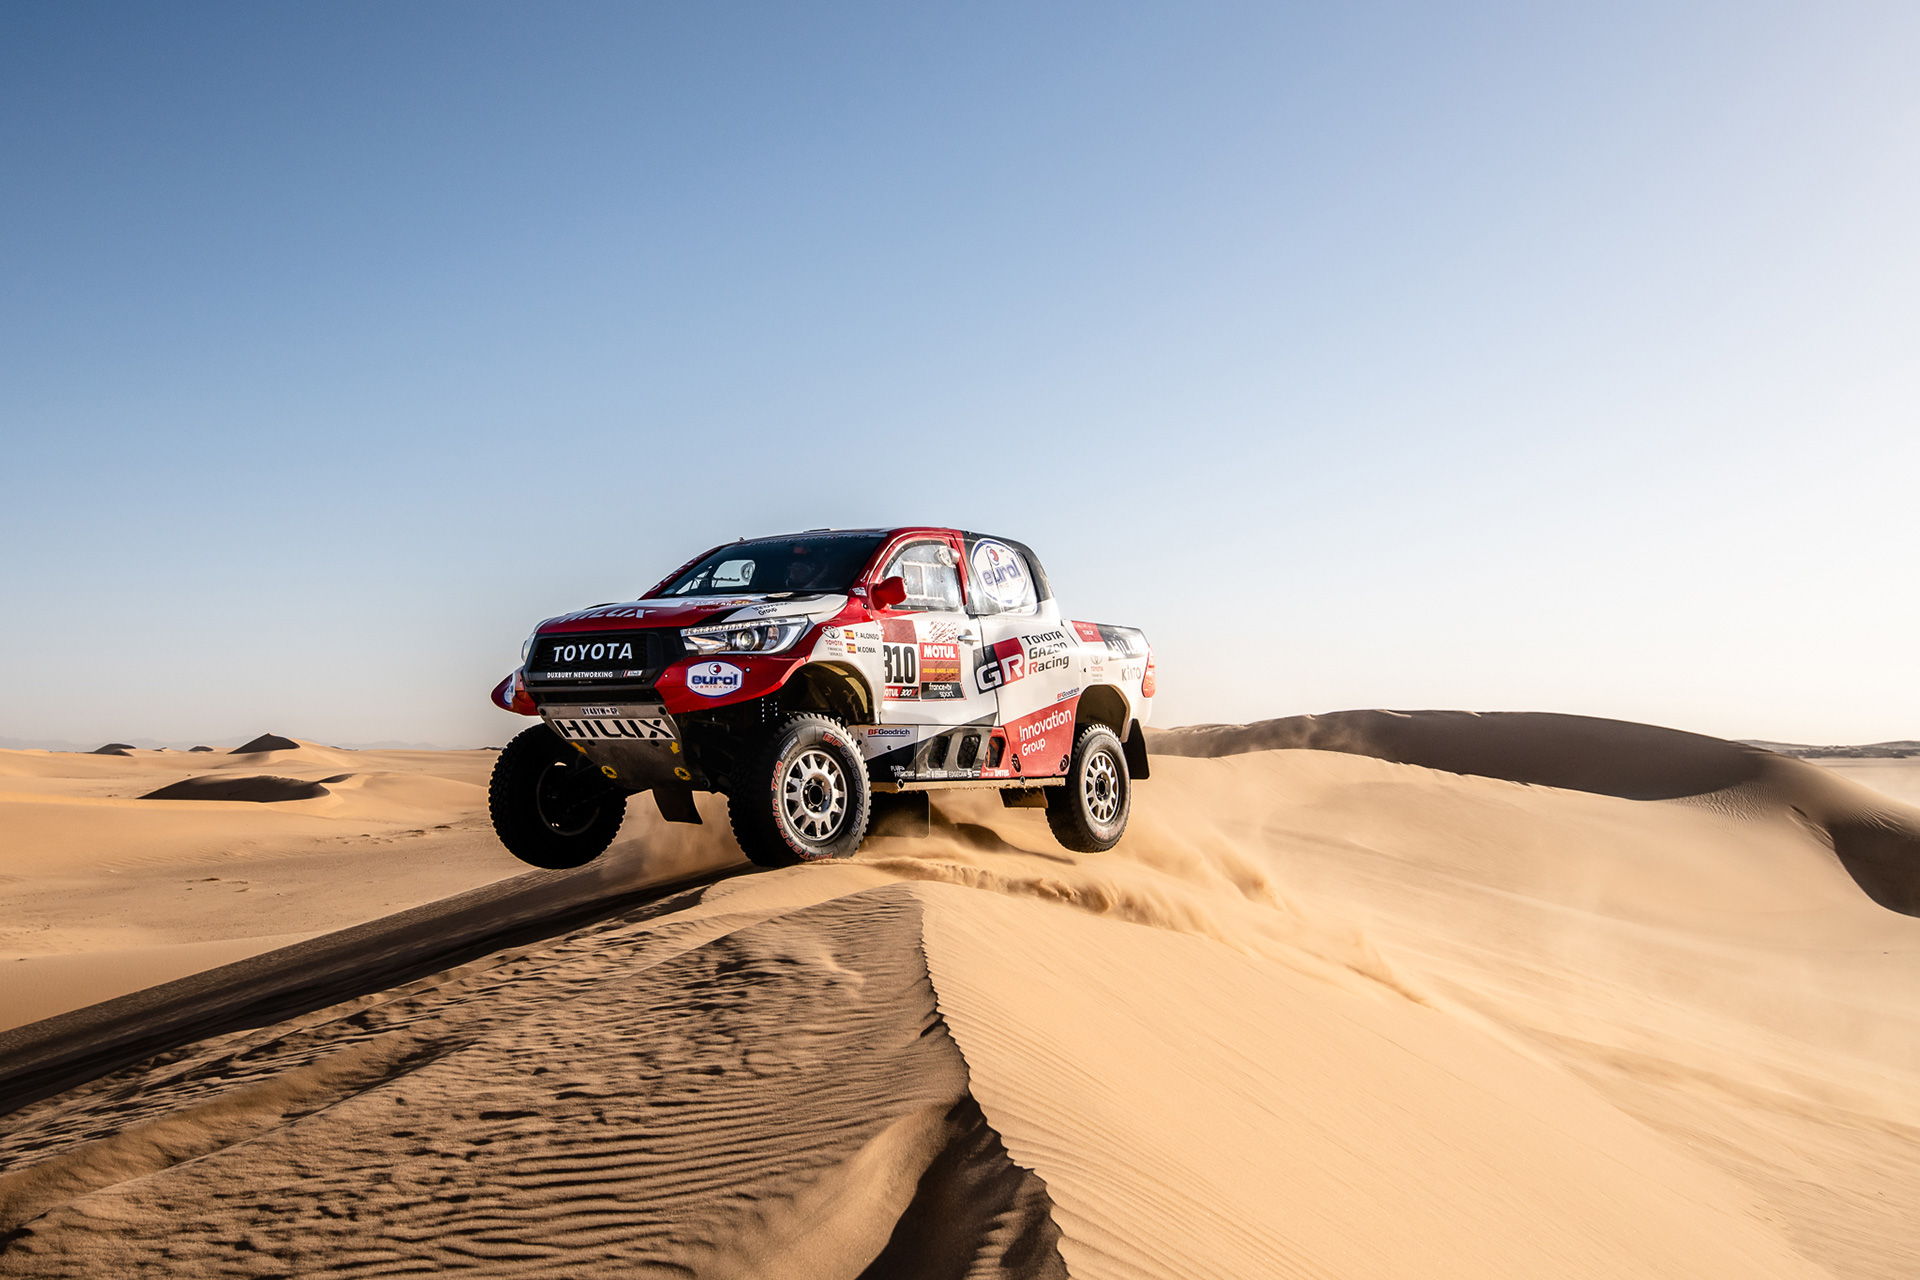 Comment from President Akio Toyoda Concerning the Outcome of the 2020 Dakar Rally - Image 3